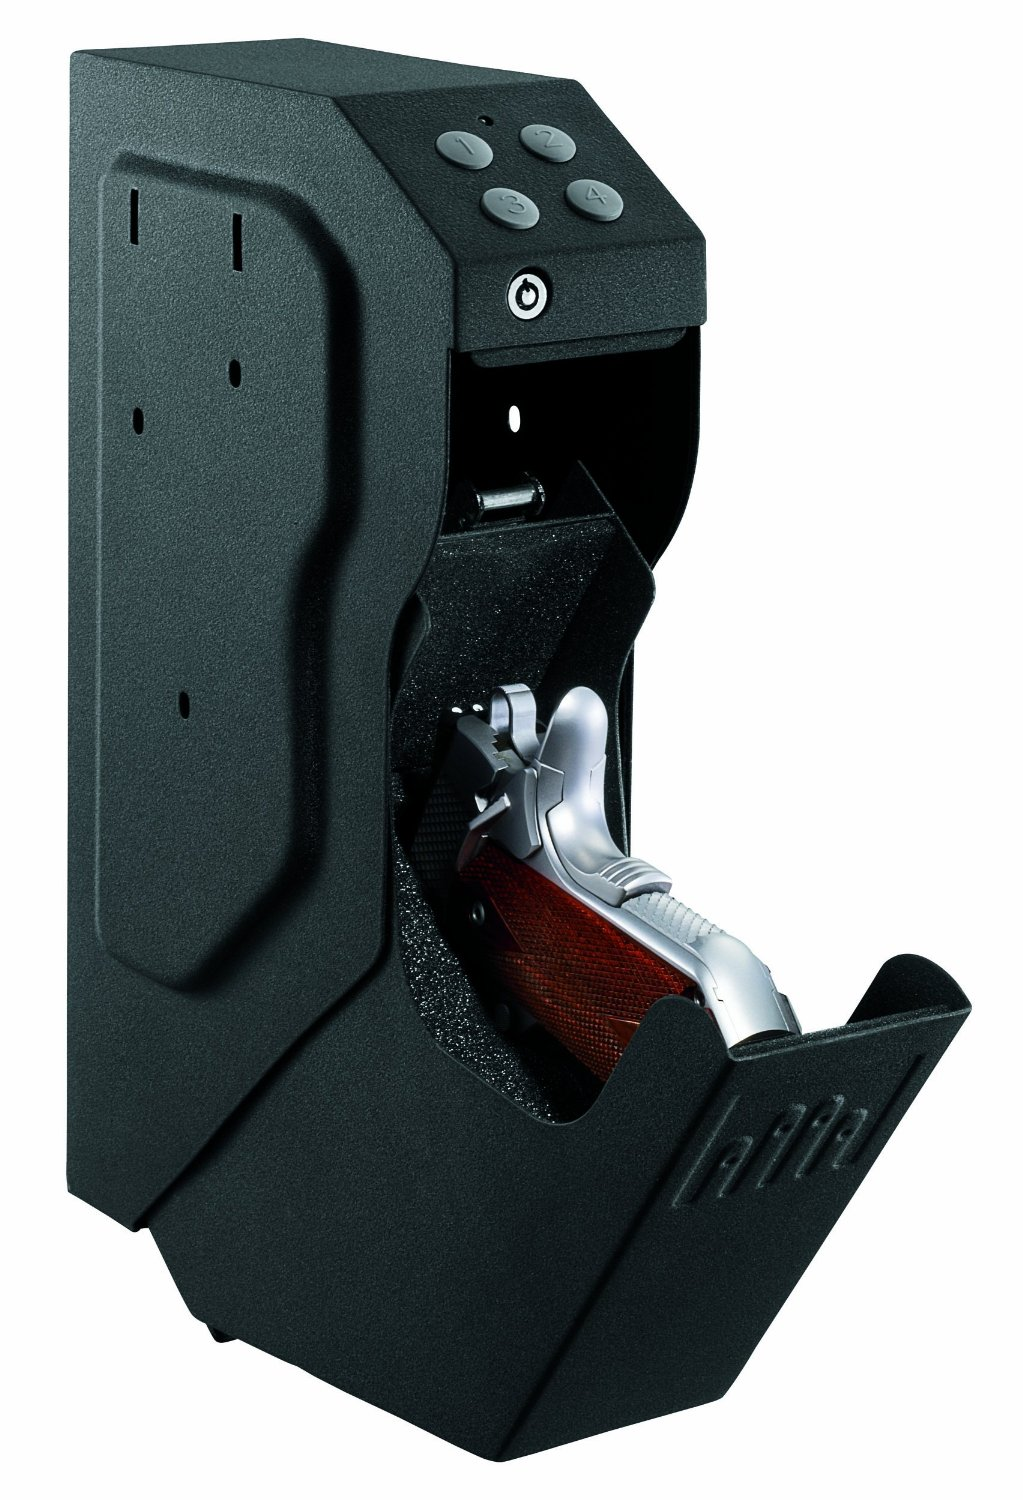 the best low budget gun safe list will be incomplete without the GunVault SV500 SpeedVault Handgun Safe